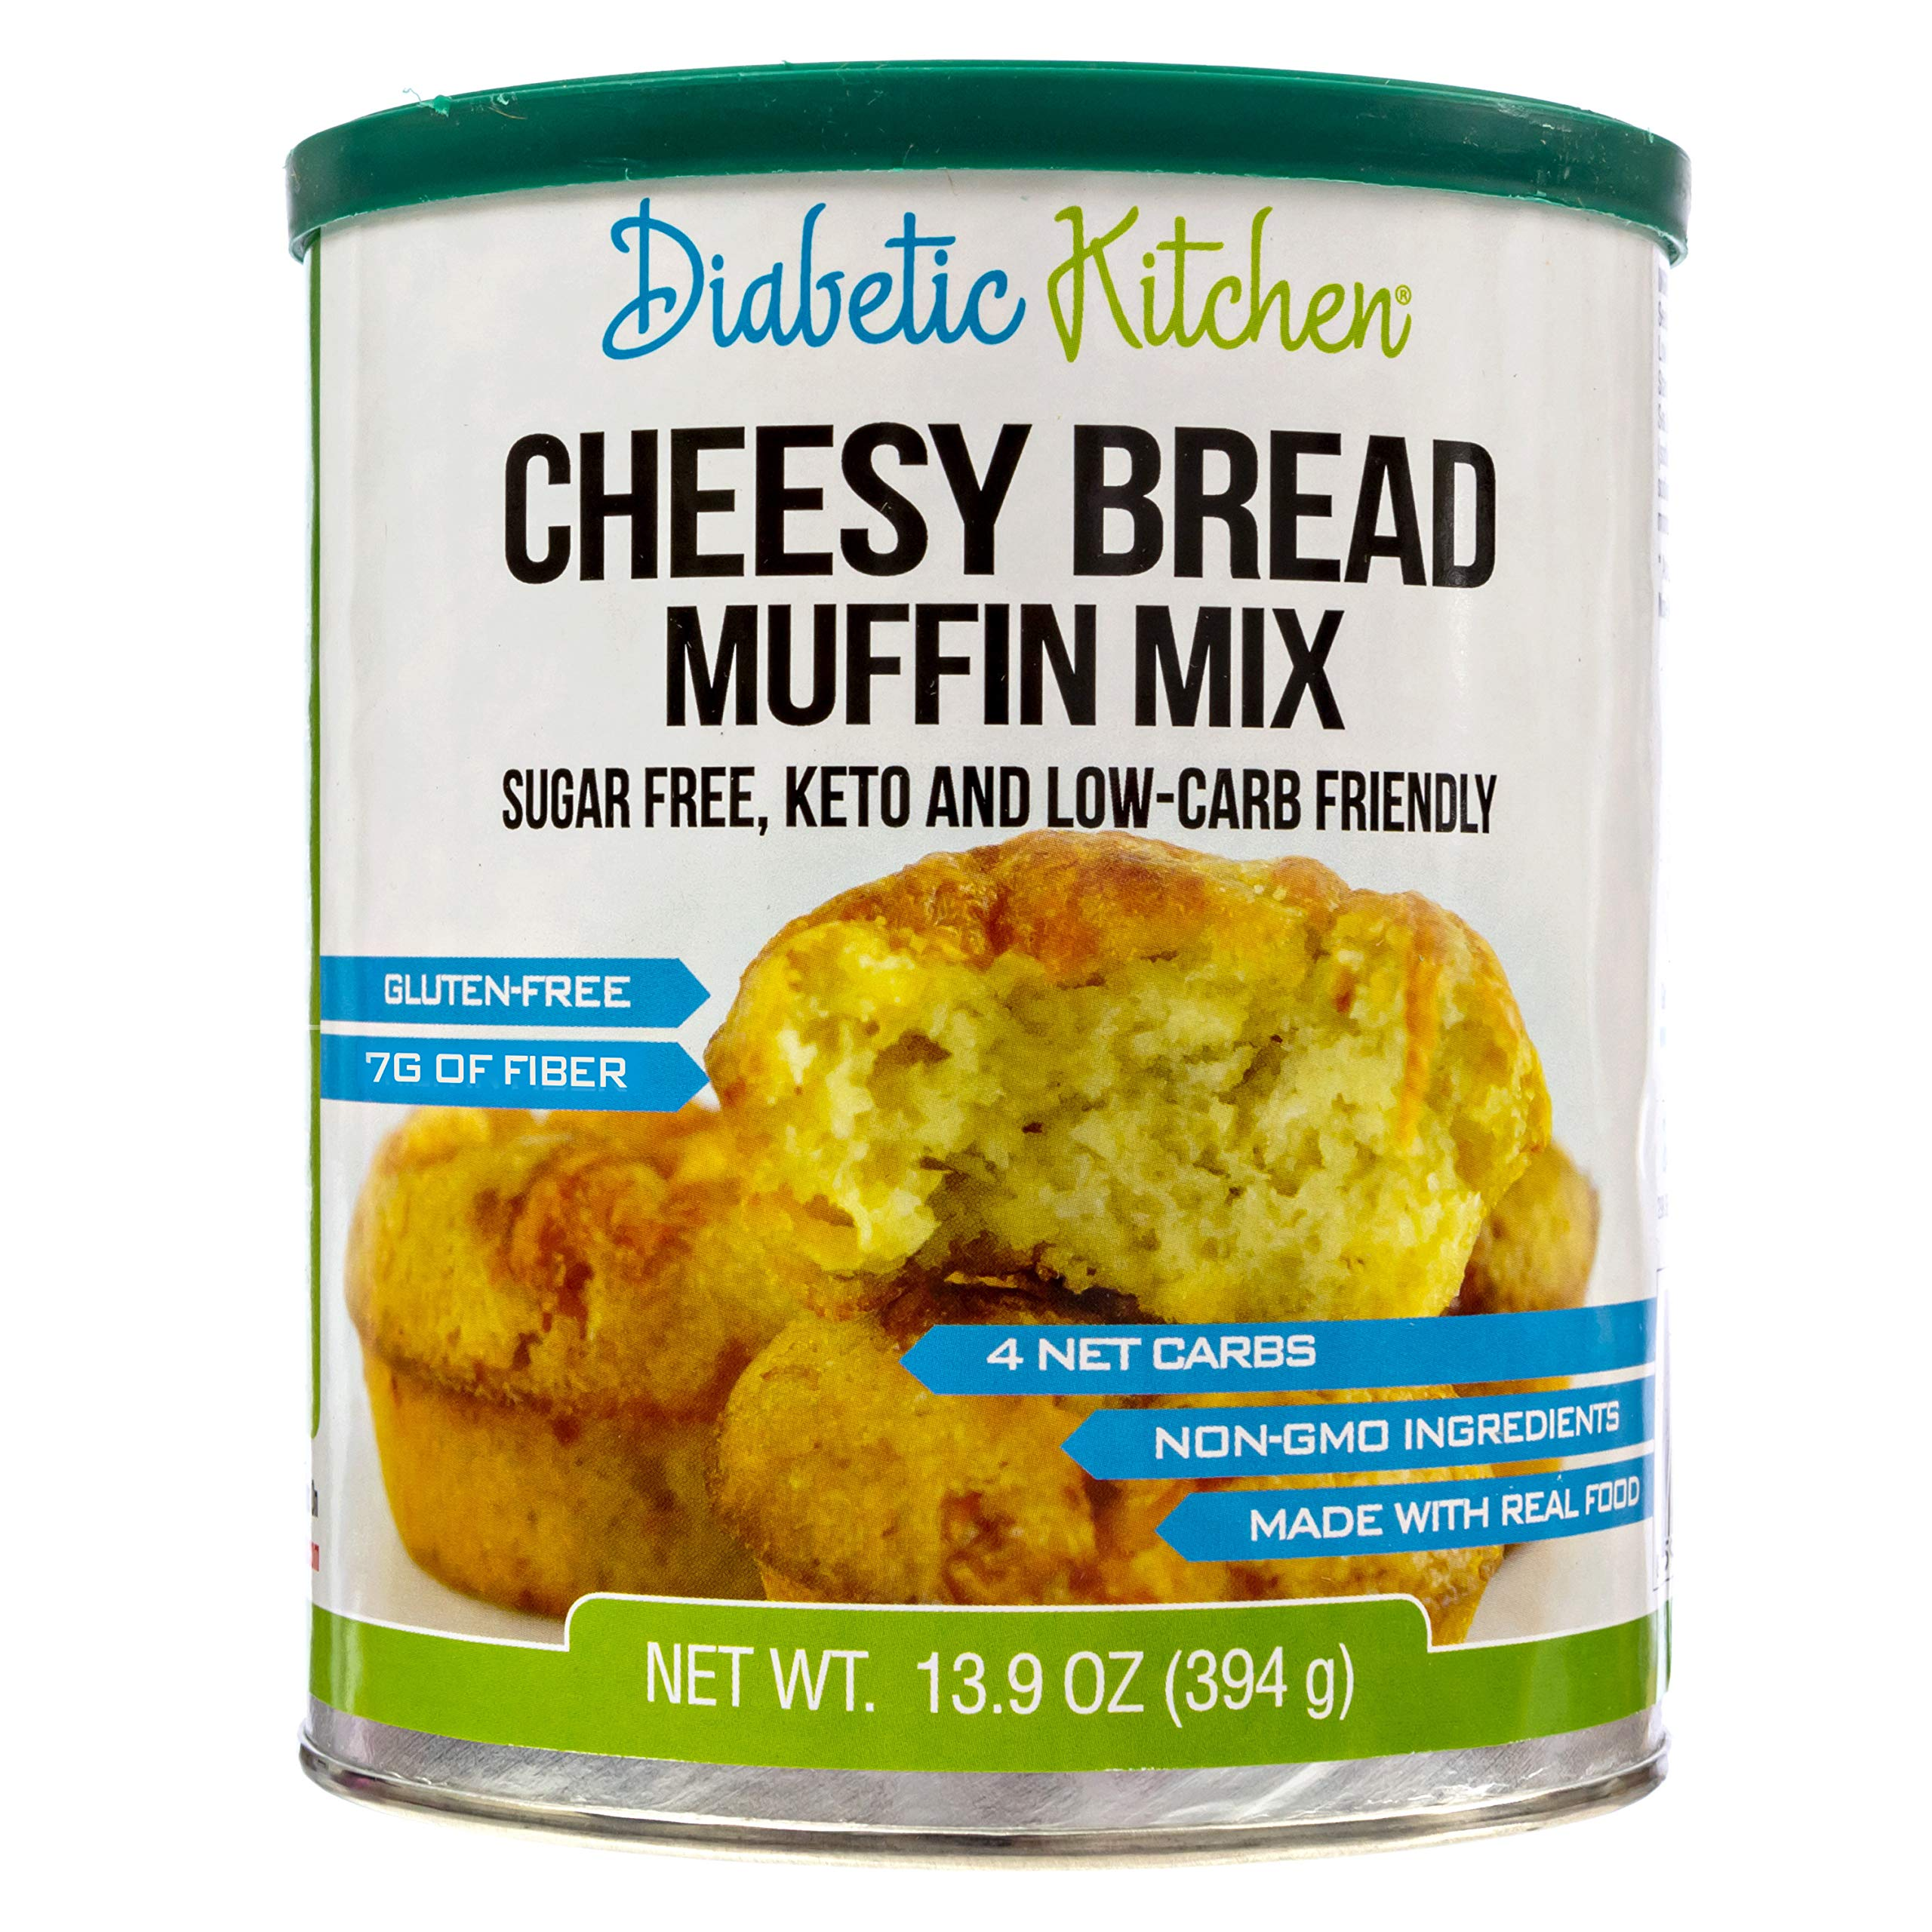 Diabetic Kitchen Cheesy Bread Muffin Mix Puts Bread Back On Your Menu, Low-Carb, Keto-Friendly, Sugar-Free, Gluten-Free, 7g Fiber, Non-GMO (24 Servings) by Diabetic Kitchen